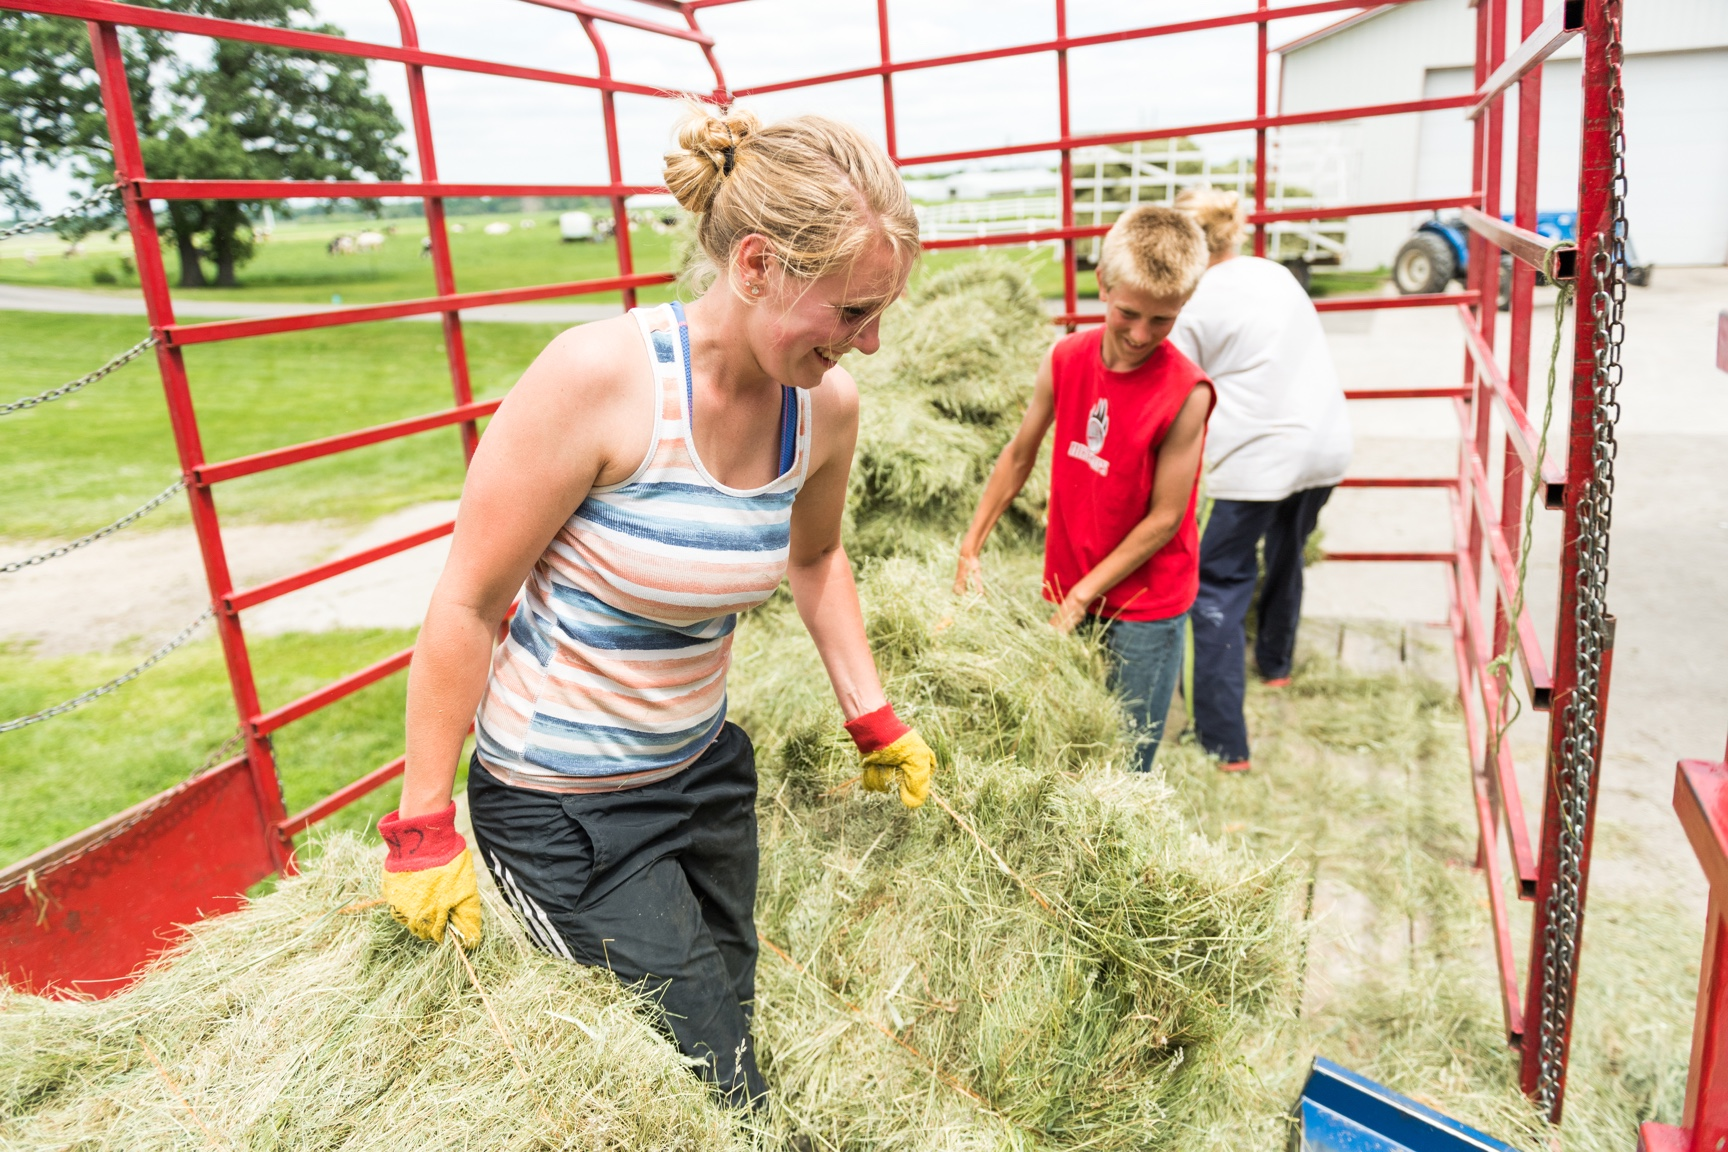 A woman farmer throws grass hay from a trailer into a chute.